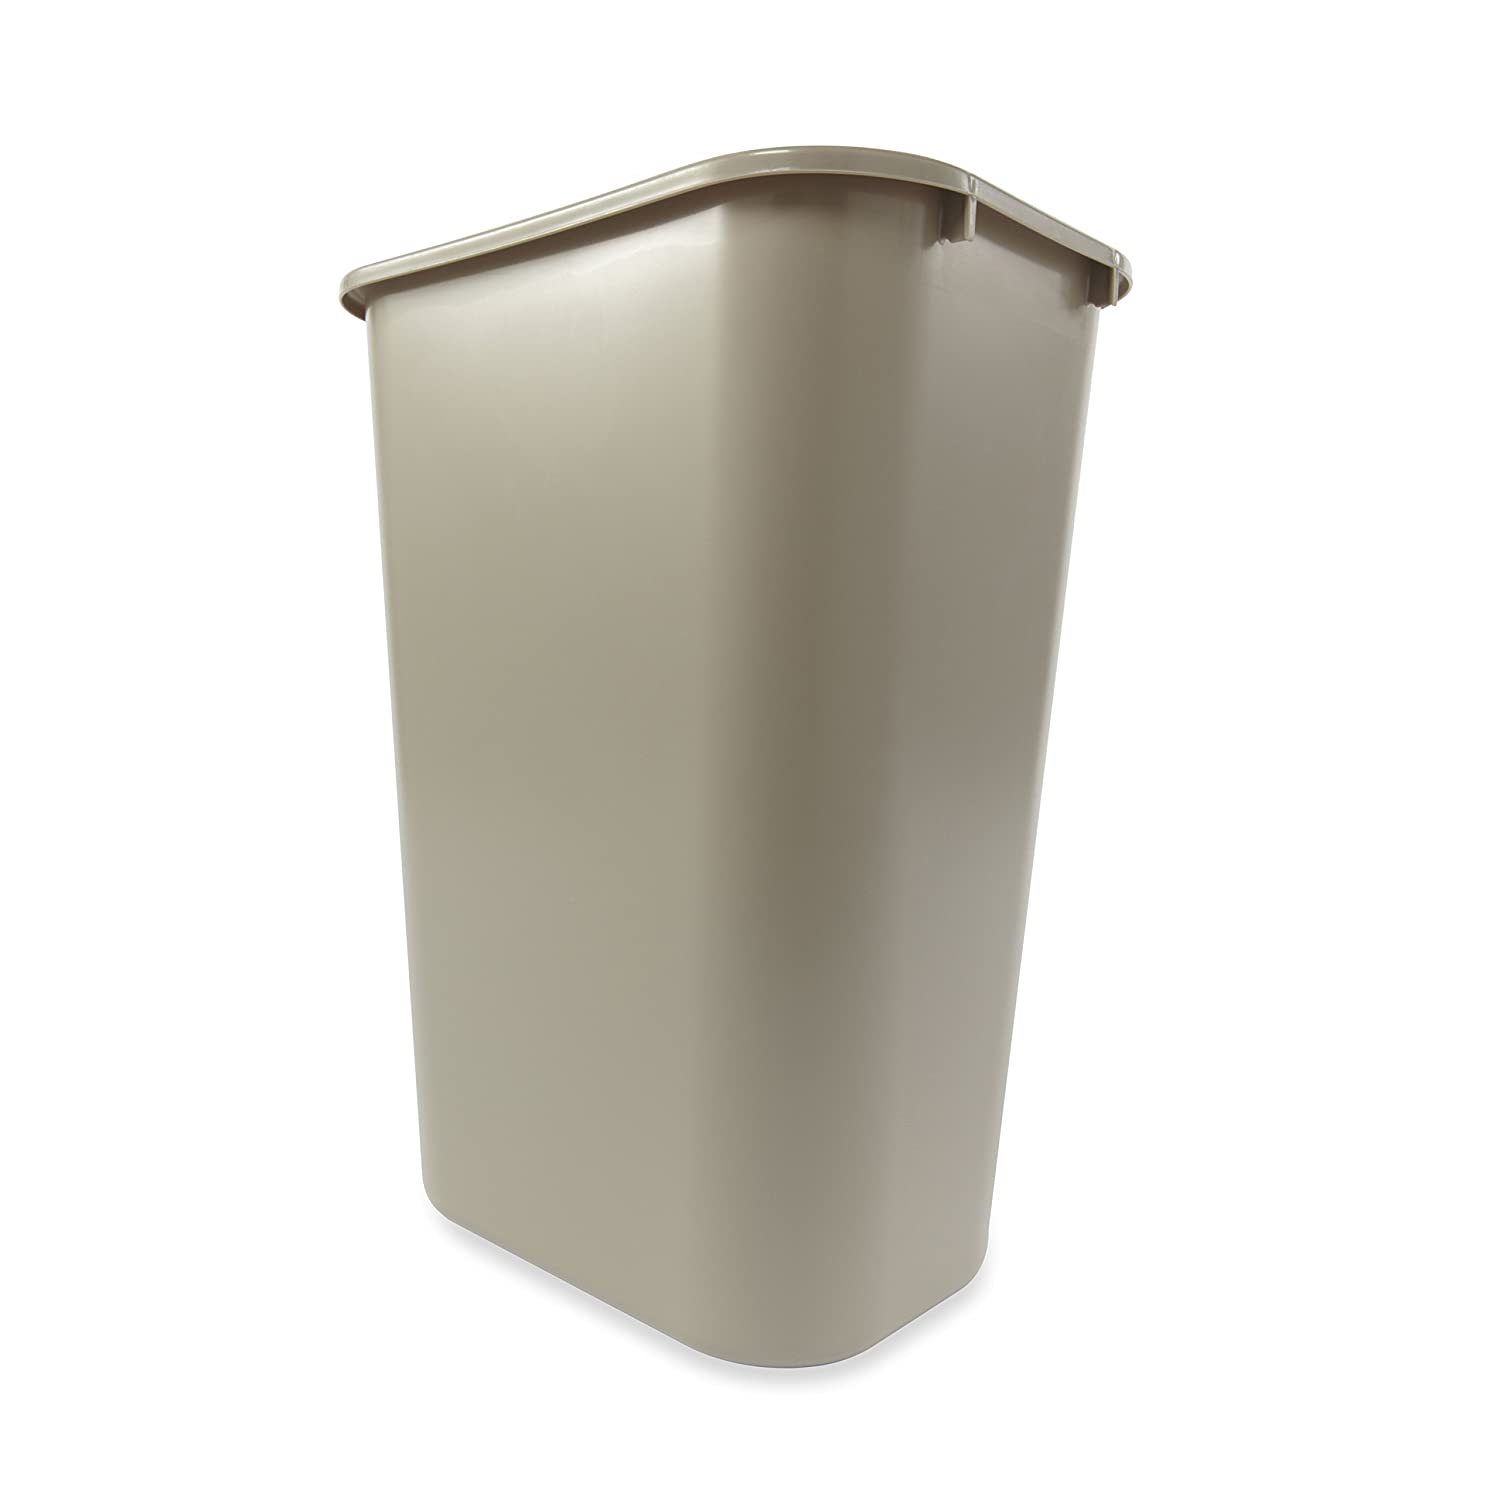 Rubbermaid Commercial Deskside Trash Can, 10 Gallon, Beige (FG295700BEIG)